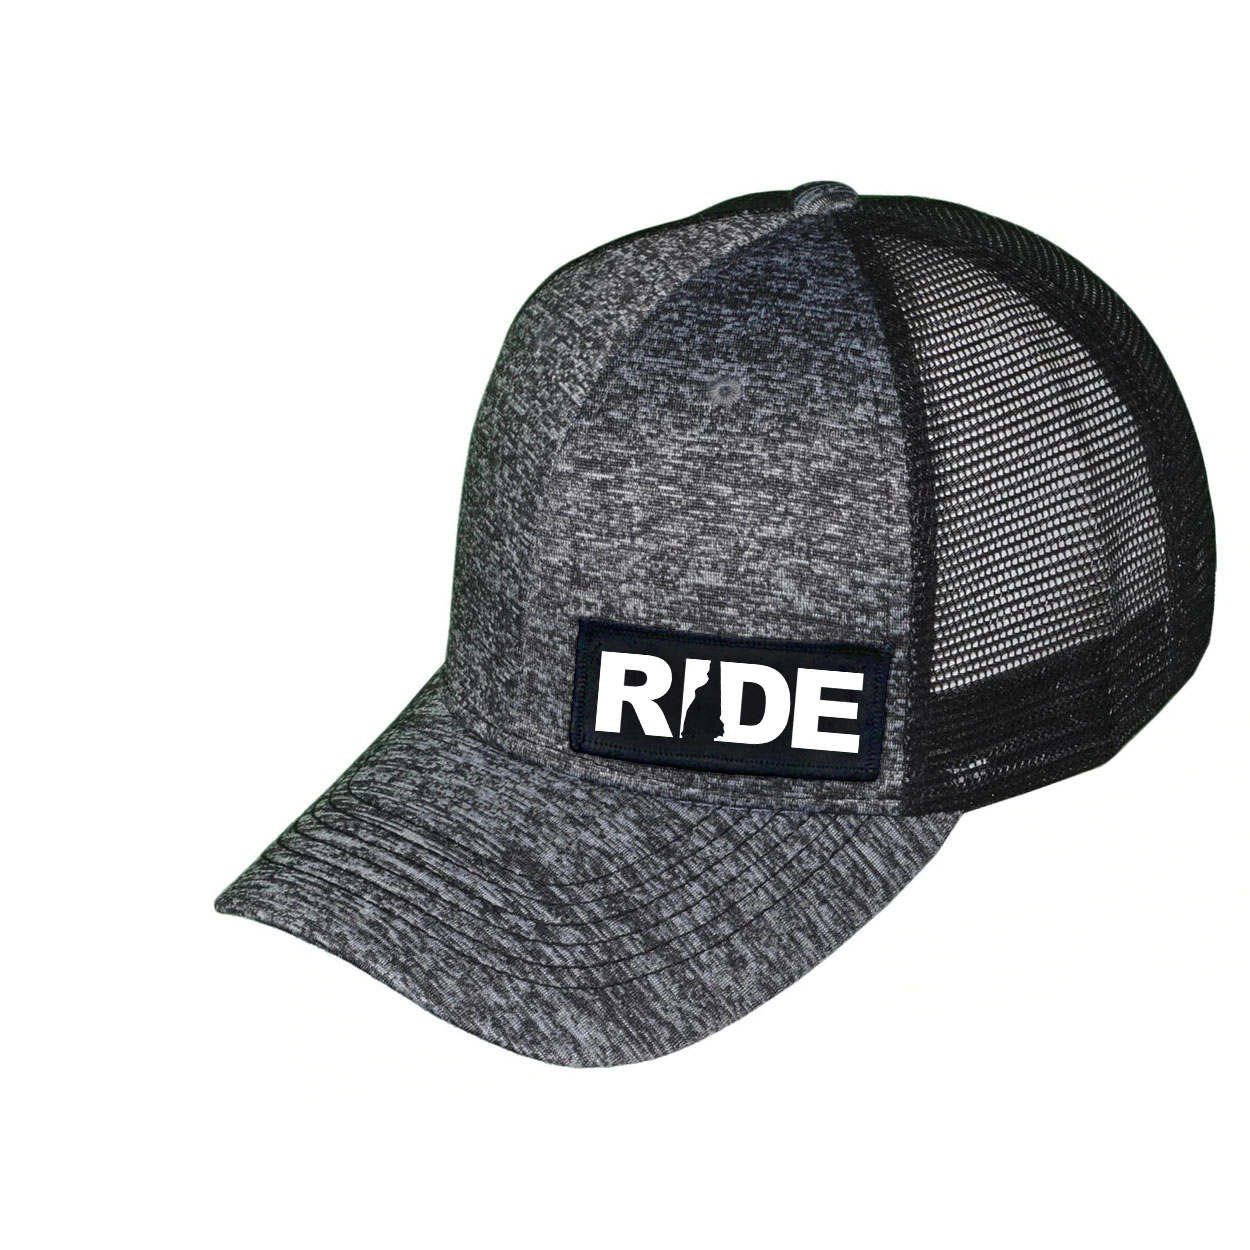 Ride New Hampshire Night Out Woven Patch Melange Snapback Trucker Hat Gray/Black (White Logo)